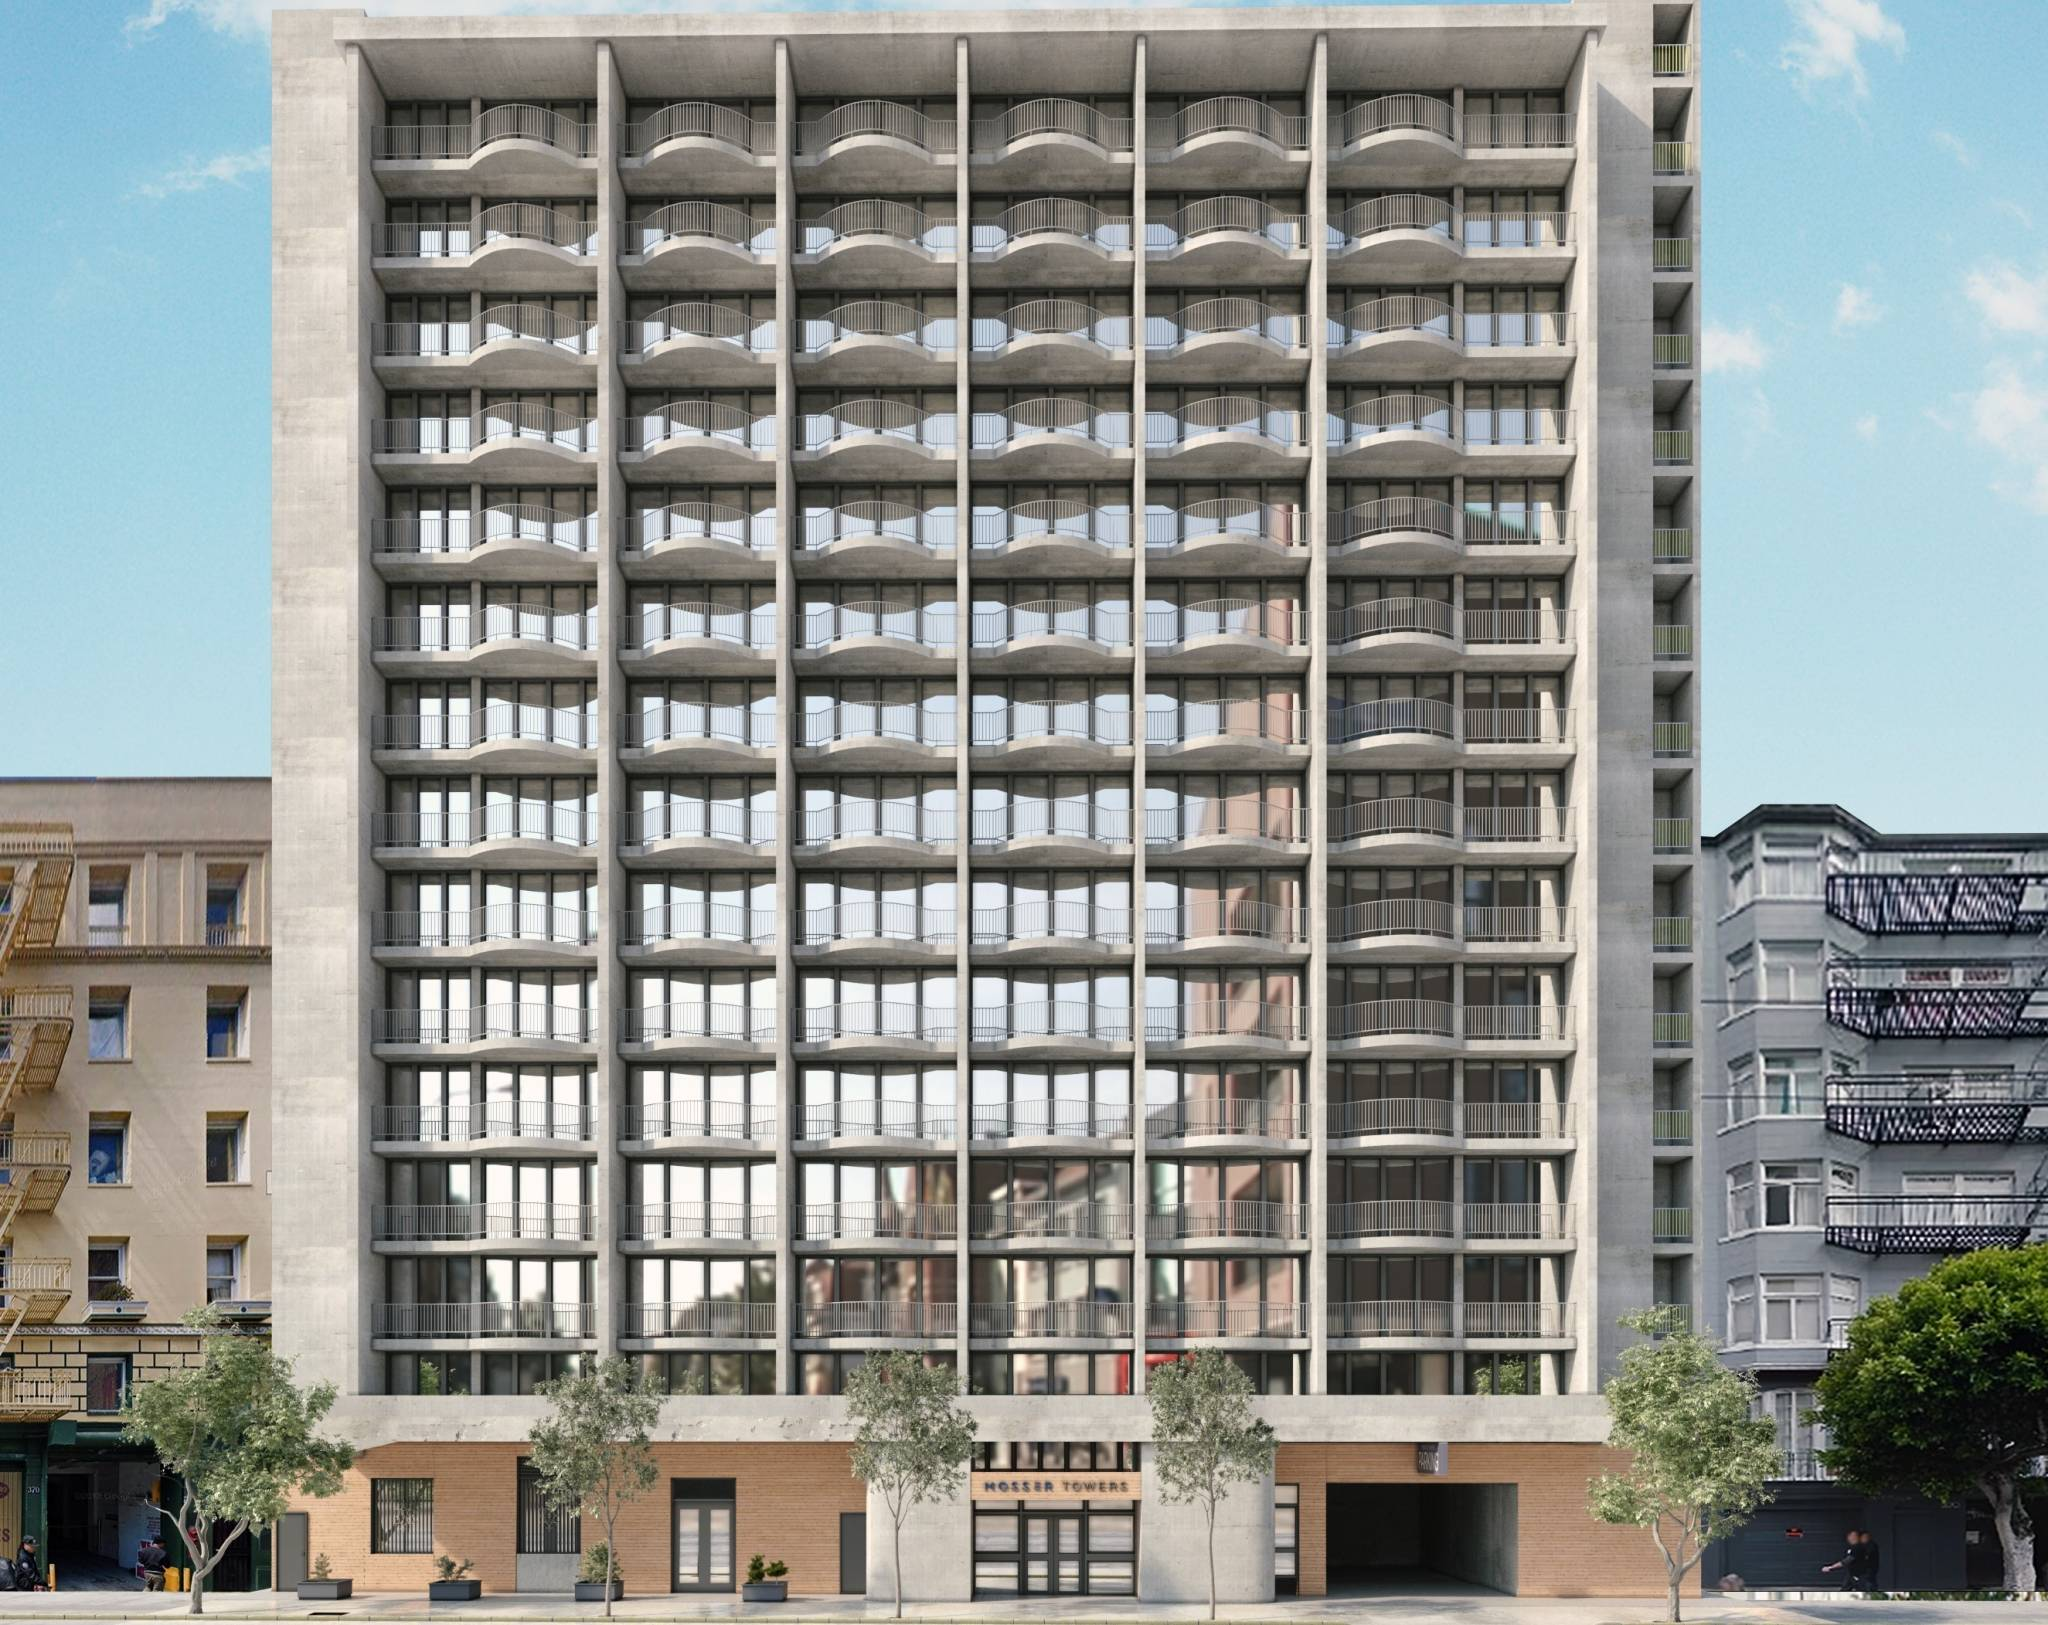 Can a pure residential apartment building be retrofitted into a mixed-use building?